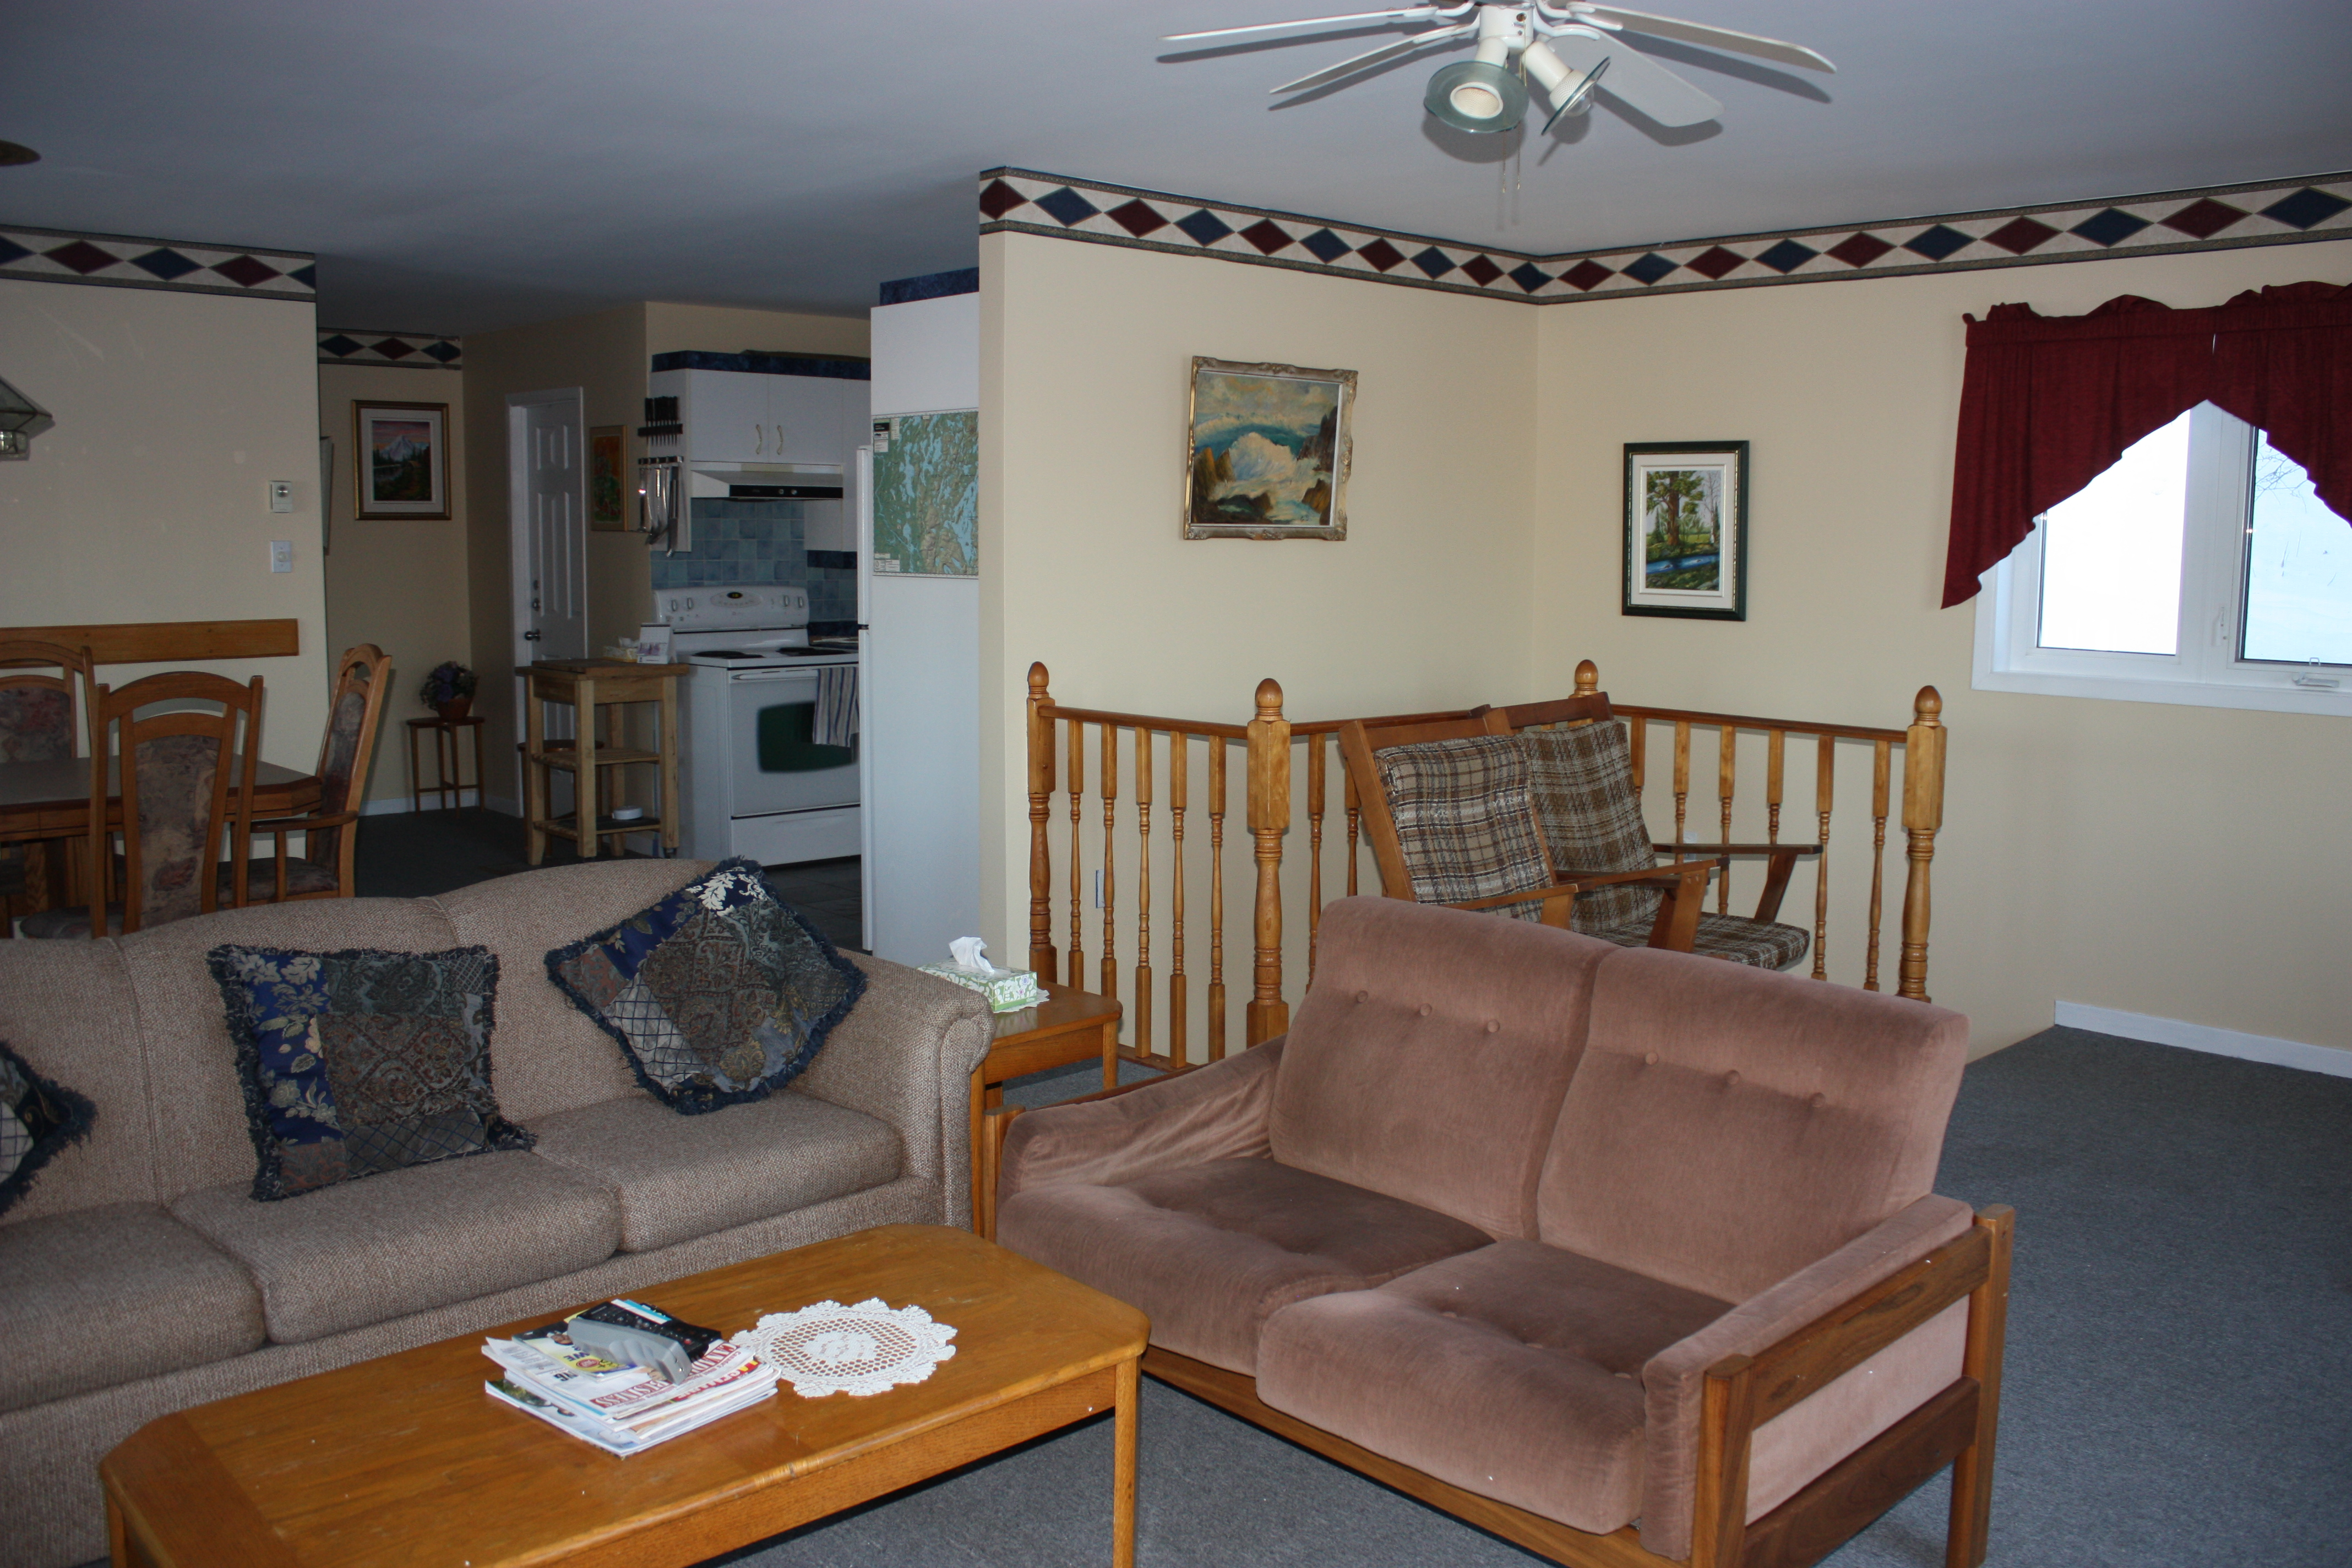 Photo of the Executive Suite Living Room